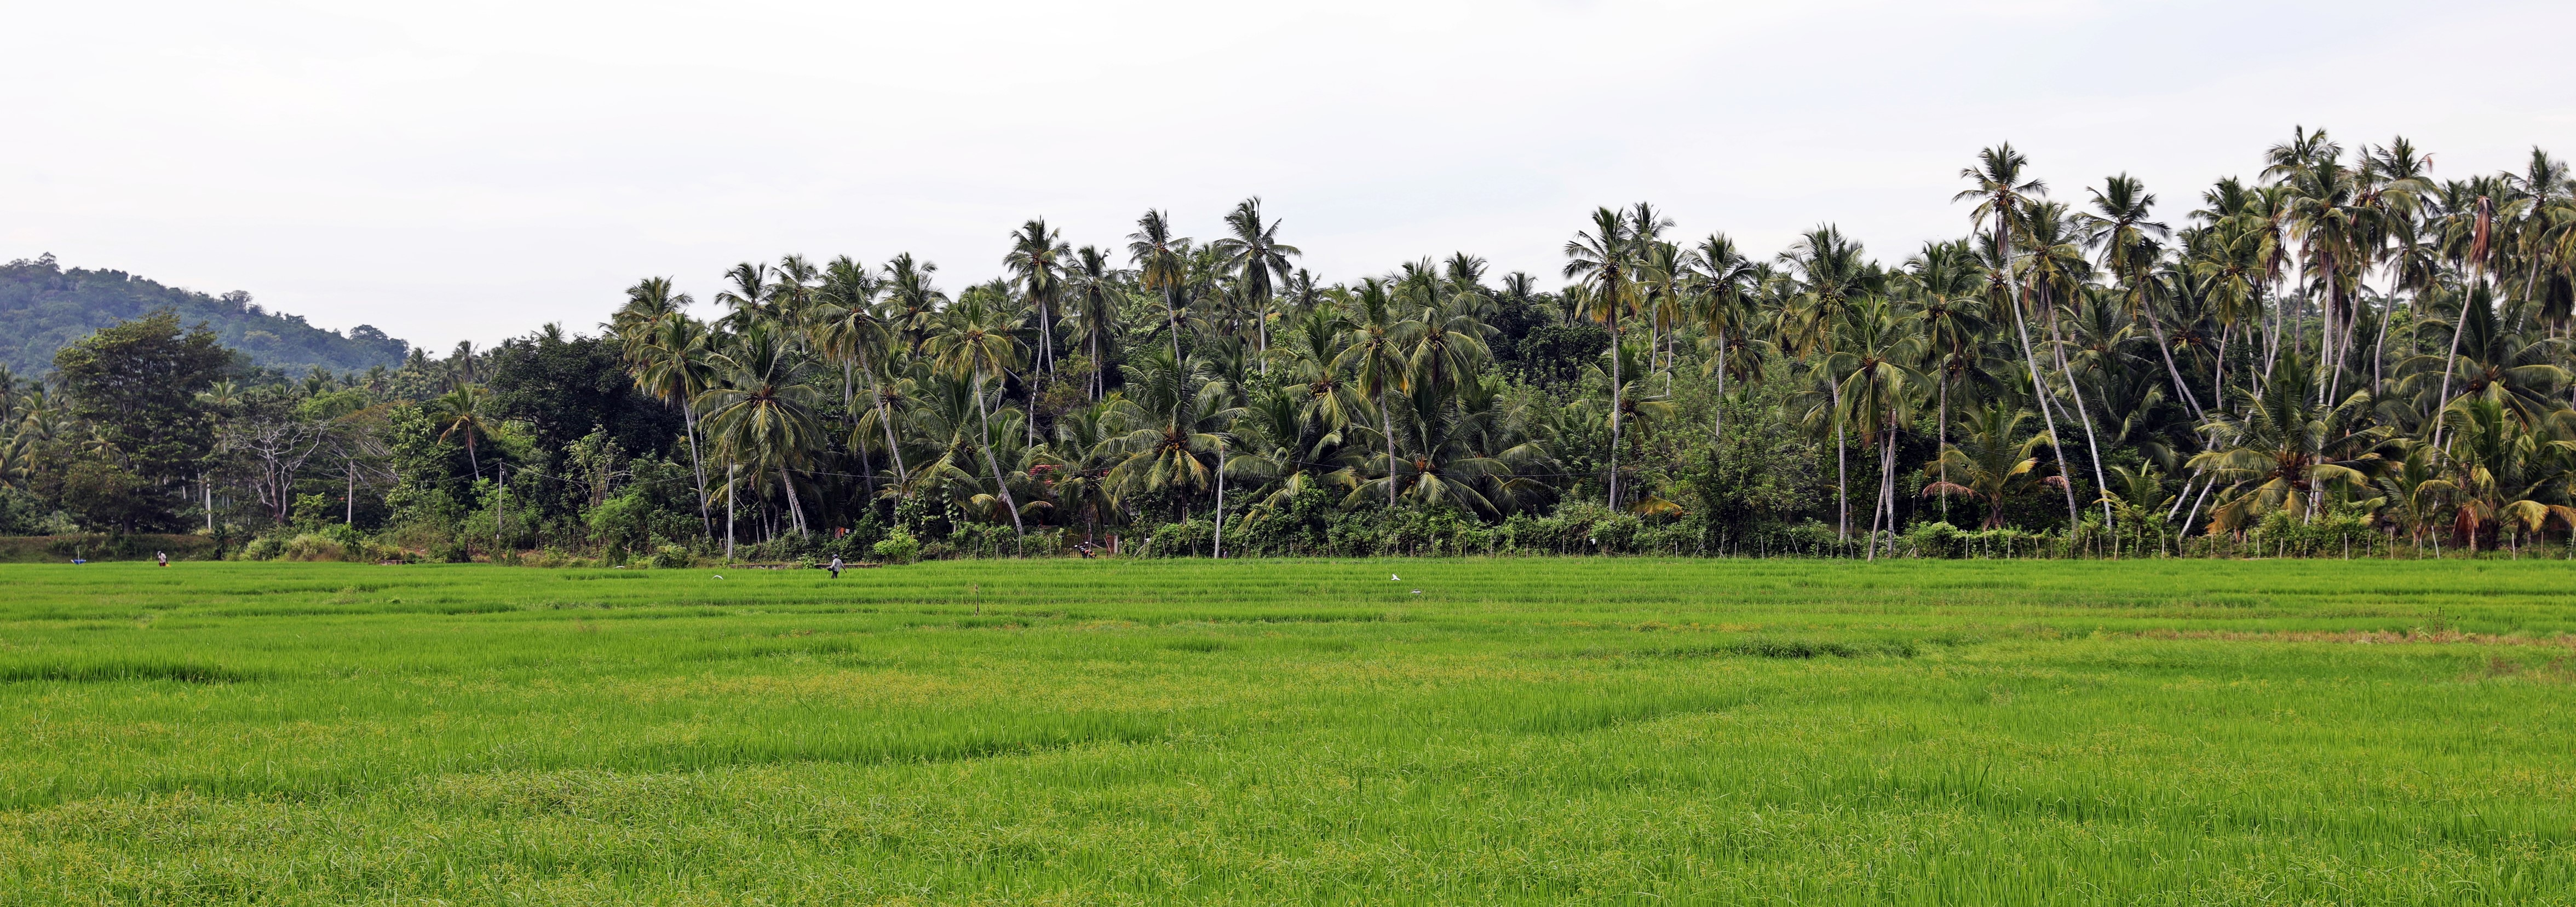 Rice paddies near Tangalle, Sri Lanka